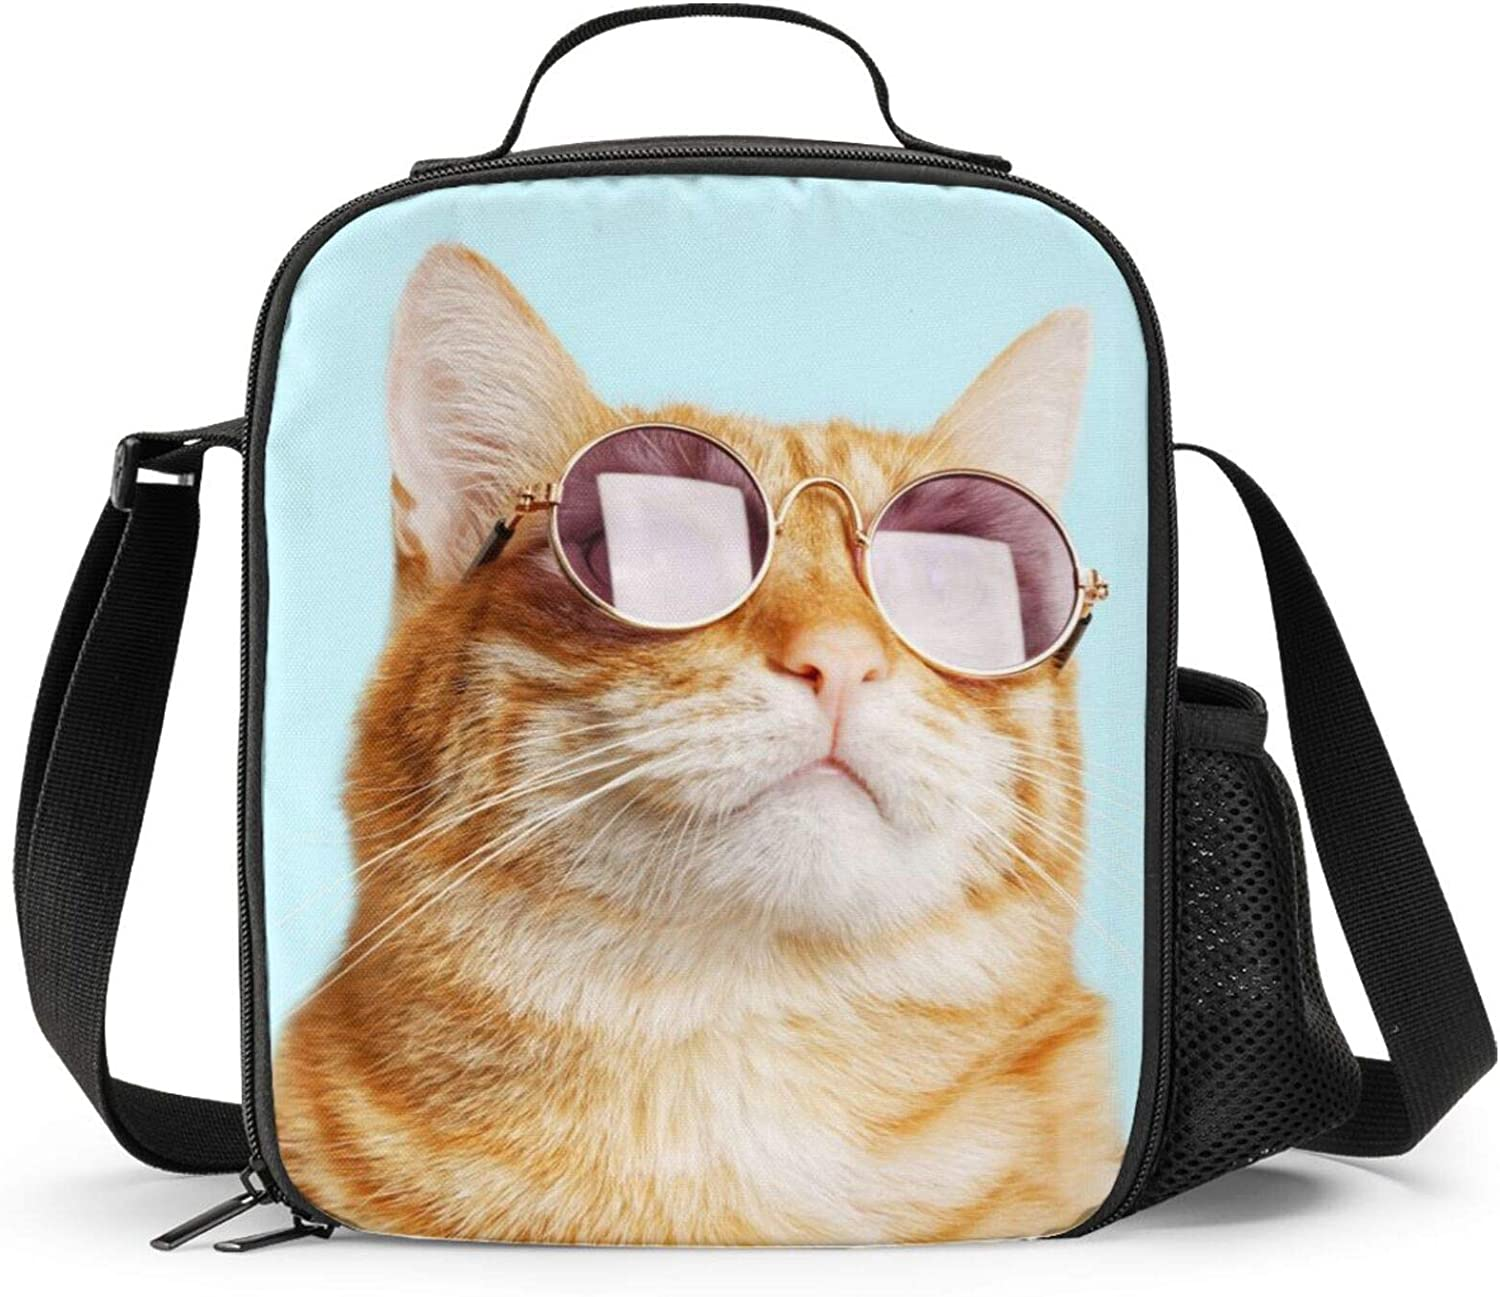 Ranking TOP8 PrelerDIY Sunglasses Cat Lunch Box Insulated for Kid Gifts -